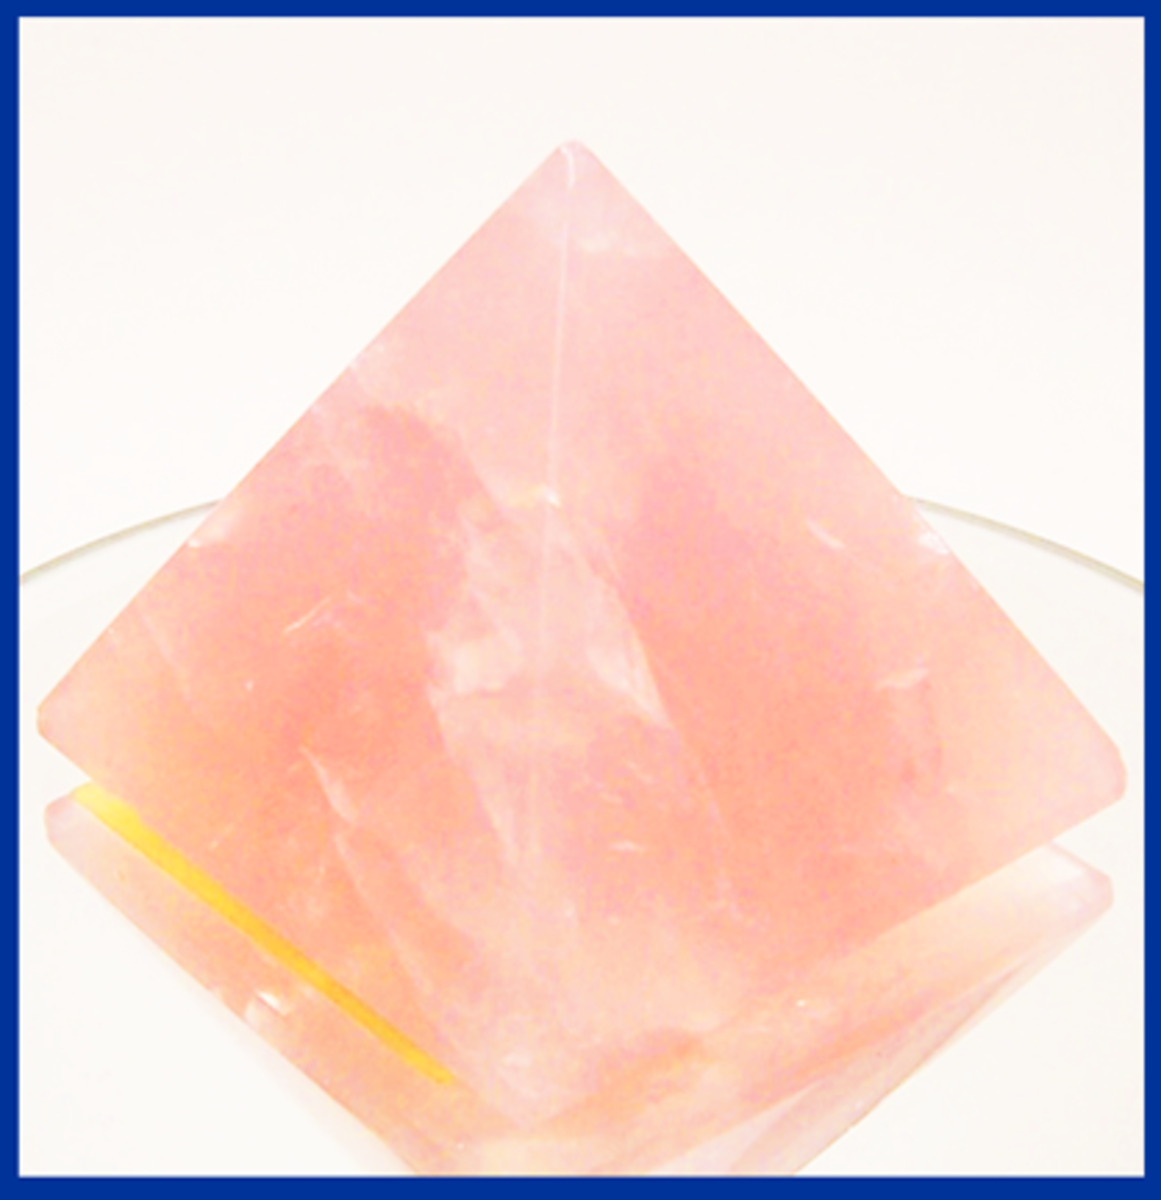 Product Photo 2.  Enhanced & cropped product photo of rose quartz pyramid,